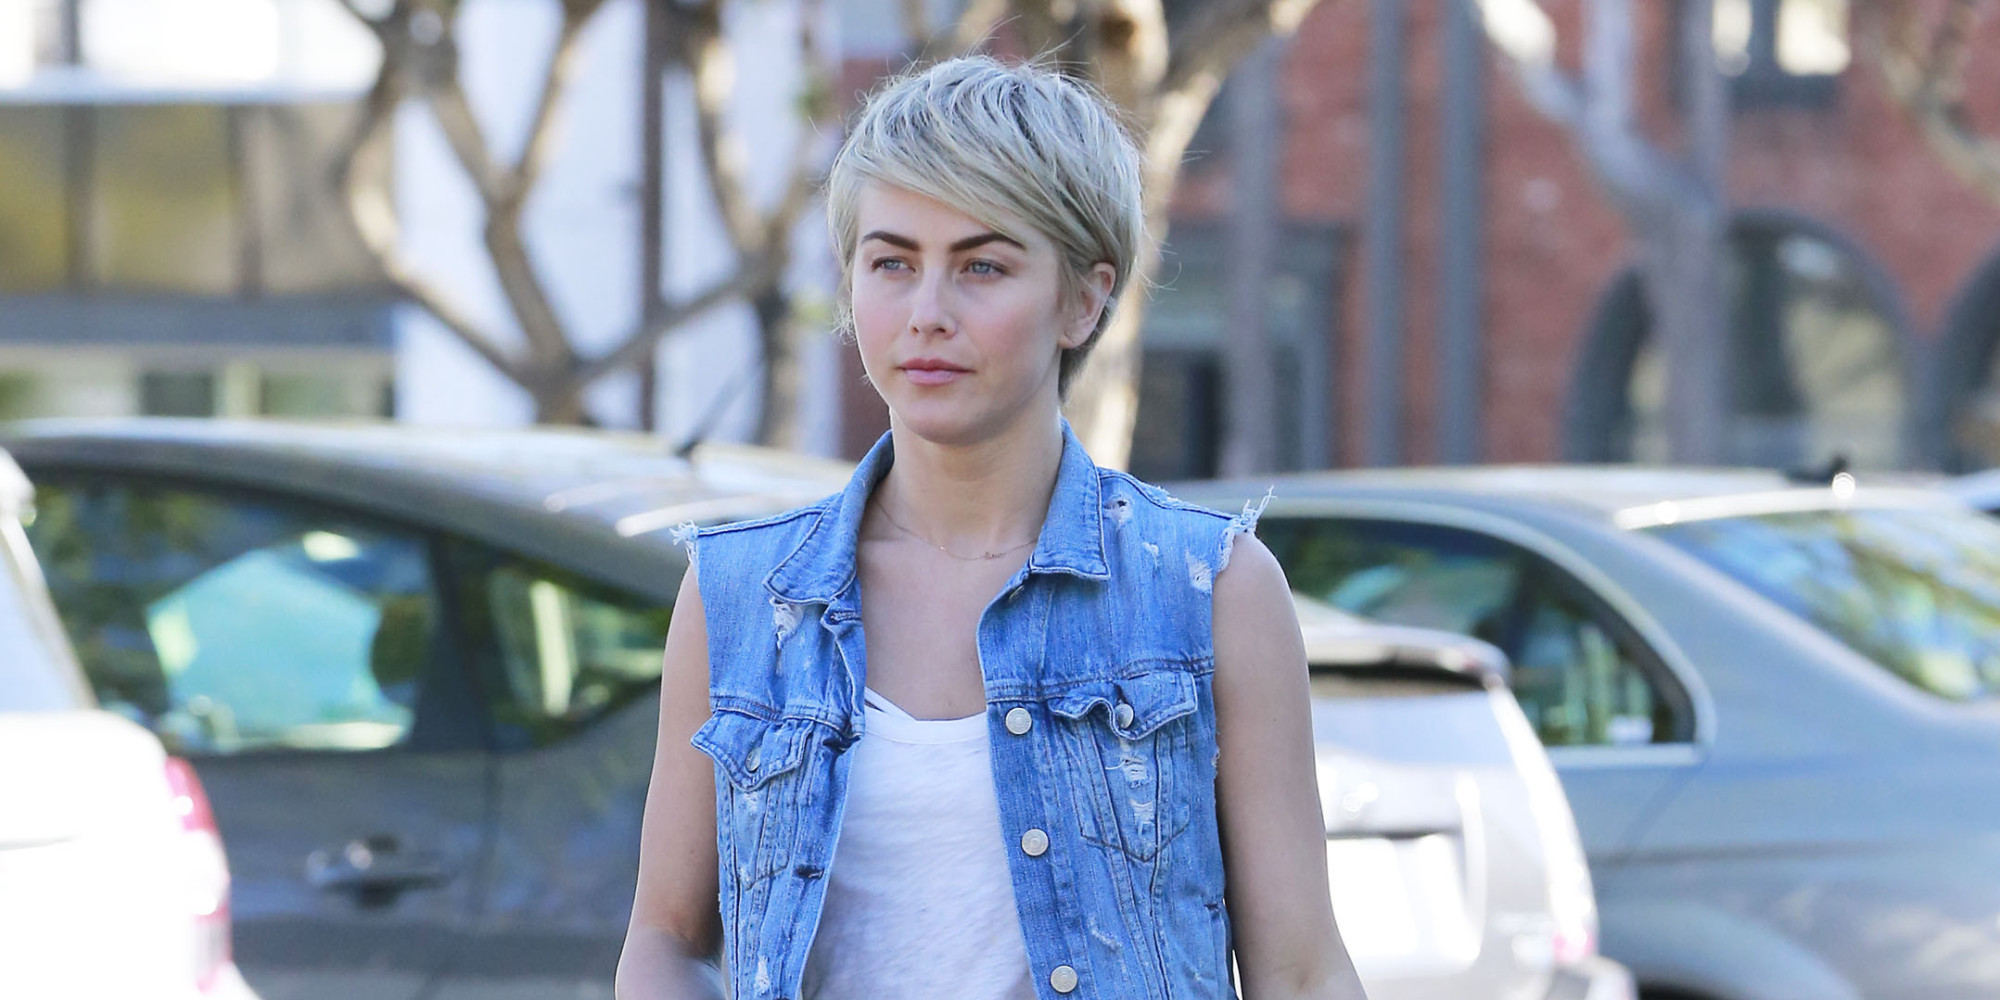 Julianne Hough Whips Out Her Short Shorts Just In Time For